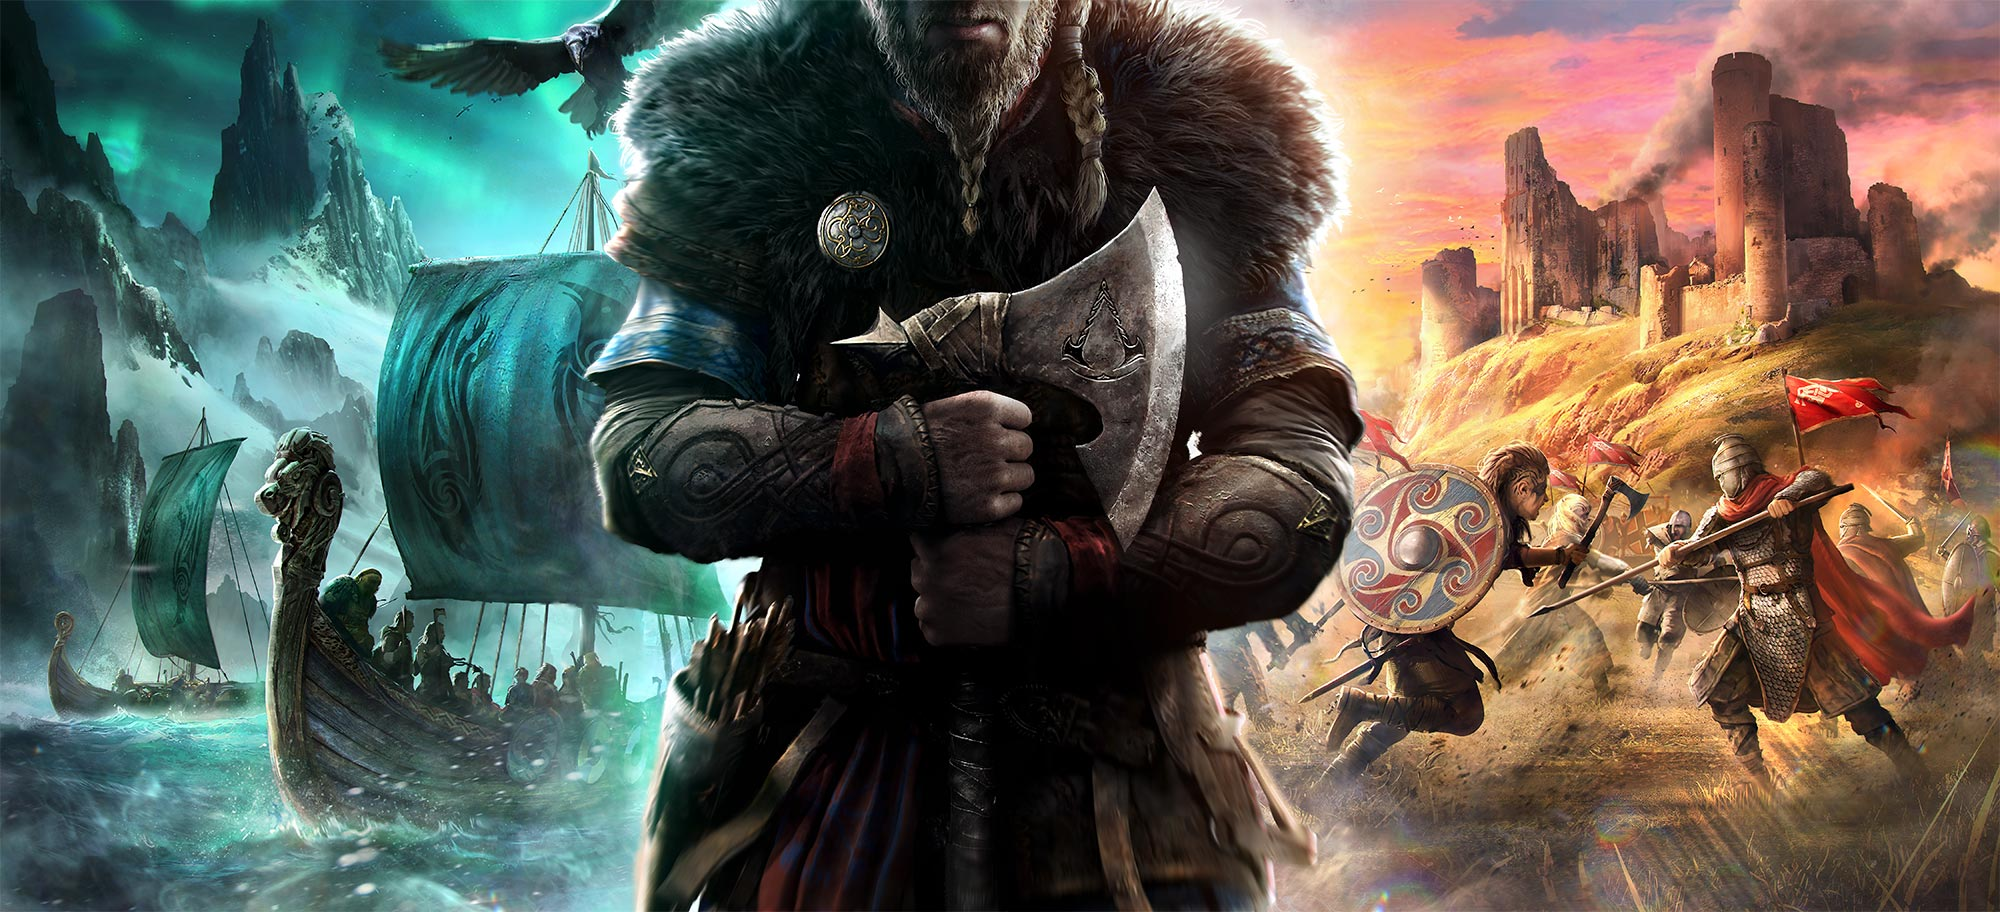 Assassin S Creed Valhalla Confirms Viking Setting For Next Game